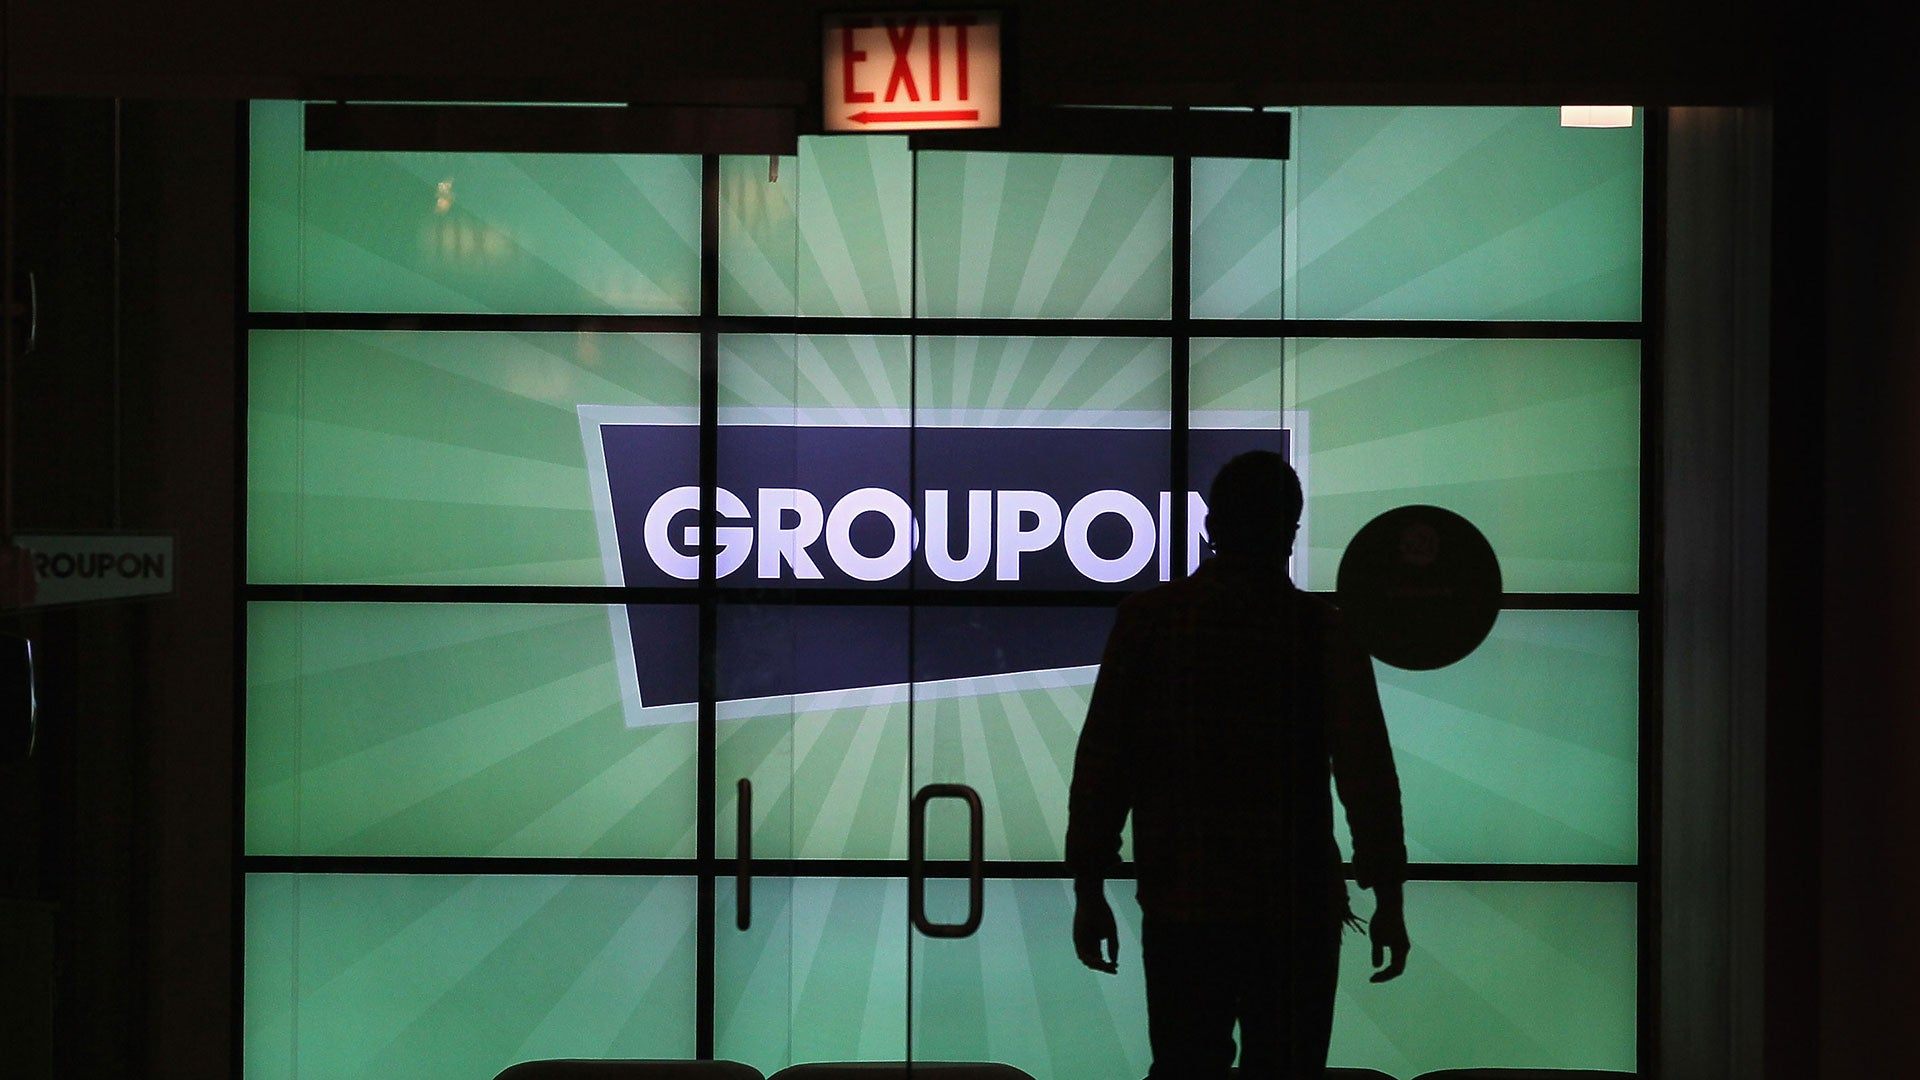 Groupon Calls It Quits On Selling Goods, Will Refocus On 'Experiences'